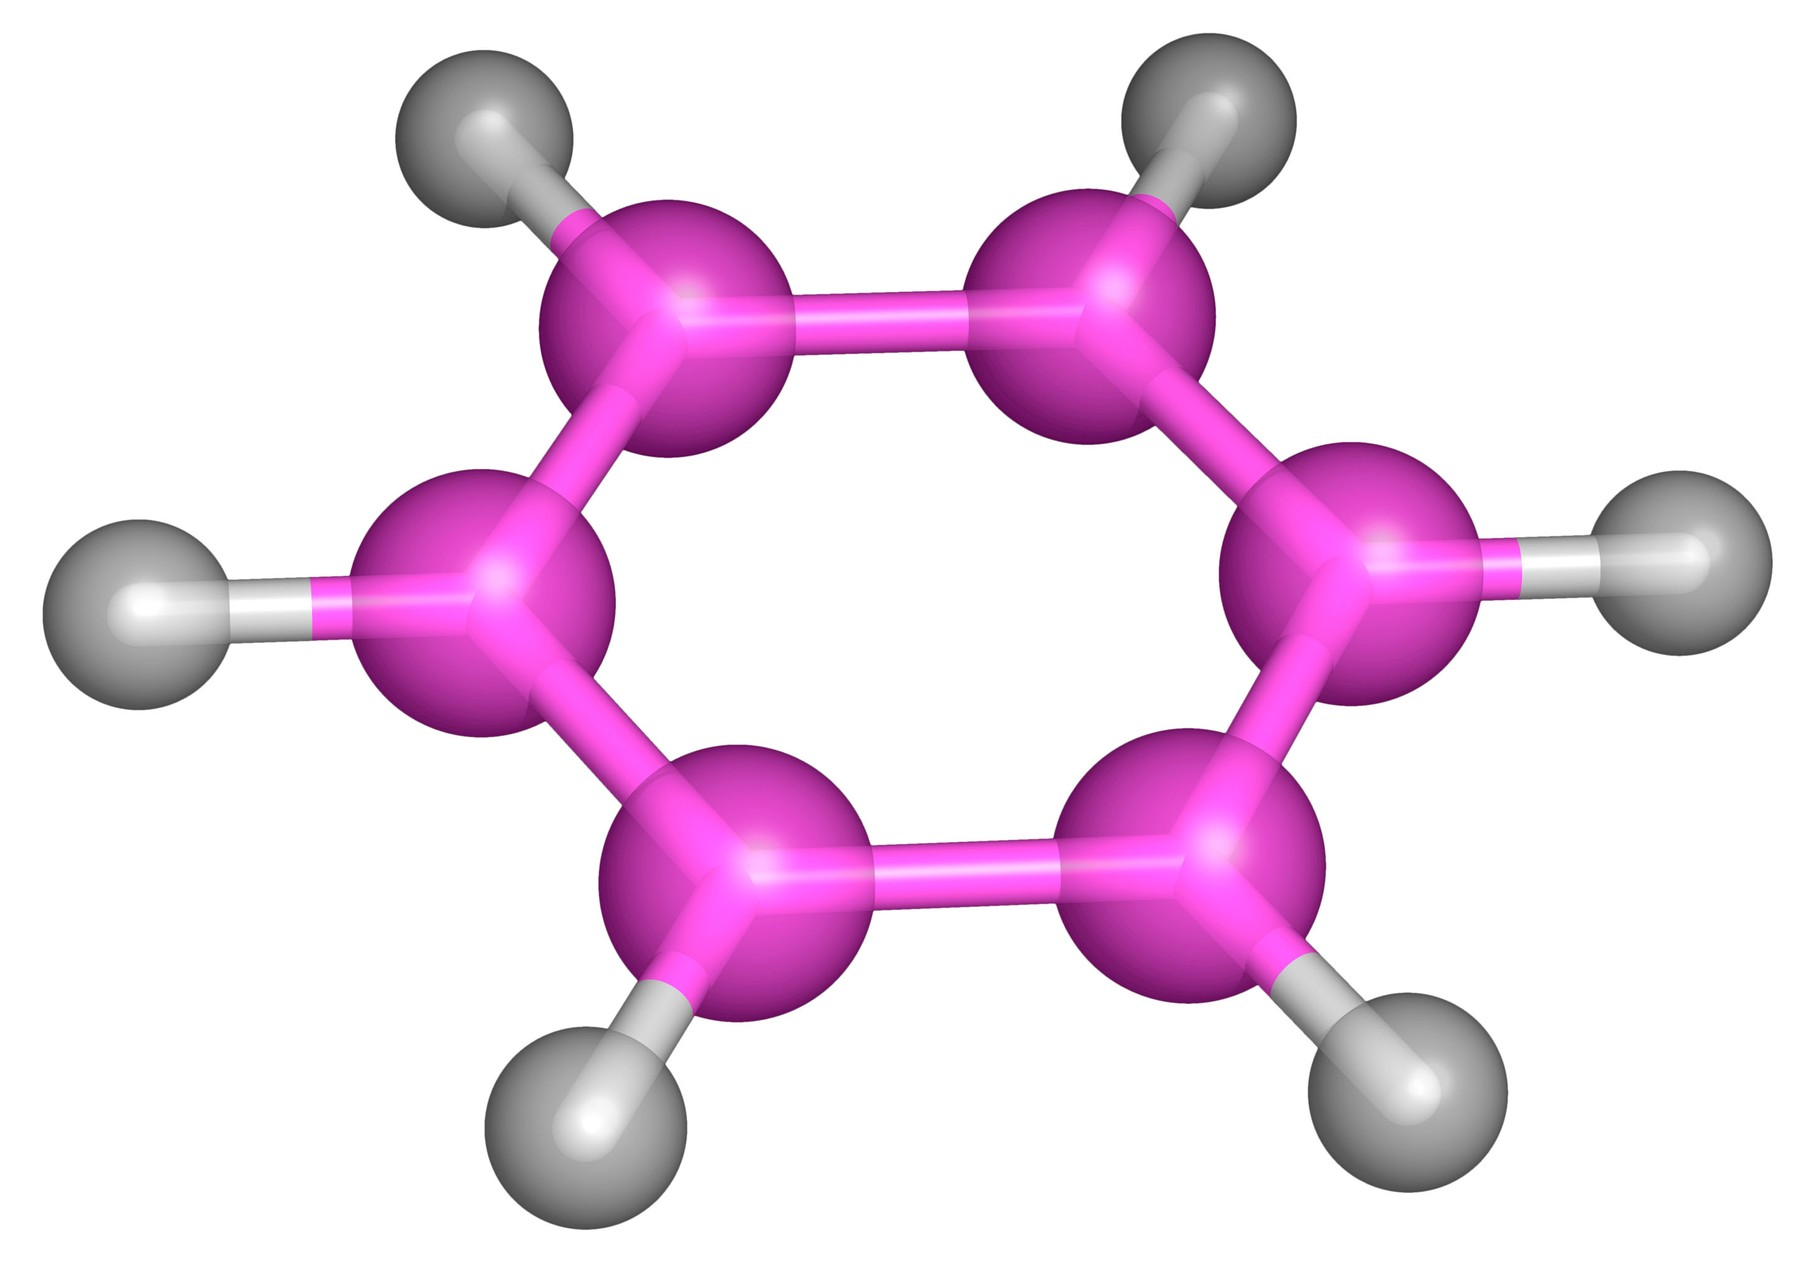 "Benzene is an organic chemical compound and an aromatic hydrocarbon. It is composed of 6 carbon atoms in a ring, with 1 hydrogen atom attached to each carbon atom, with the molecular formula C6H6. Benzene is a natural constituent of crude oil, and is one of the most basic petrochemicals. In the 19th and early-20th centuries, benzene was used as an after-shave lotion because of its pleasant smell. As its toxicity became obvious, benzene was supplanted by other solvents. Benzene causes cancer and other illnesses. Benzene is a ""notorious cause"" of bone marrow failure. ""Vast quantities of epidemiologic, clinical, and laboratory data"" link benzene to aplastic anemia, acute leukemia, and bone marrow abnormalities., Image: 106540954, License: Rights-managed, Restrictions: , Model Release: no, Credit line: Profimedia, Alamy"